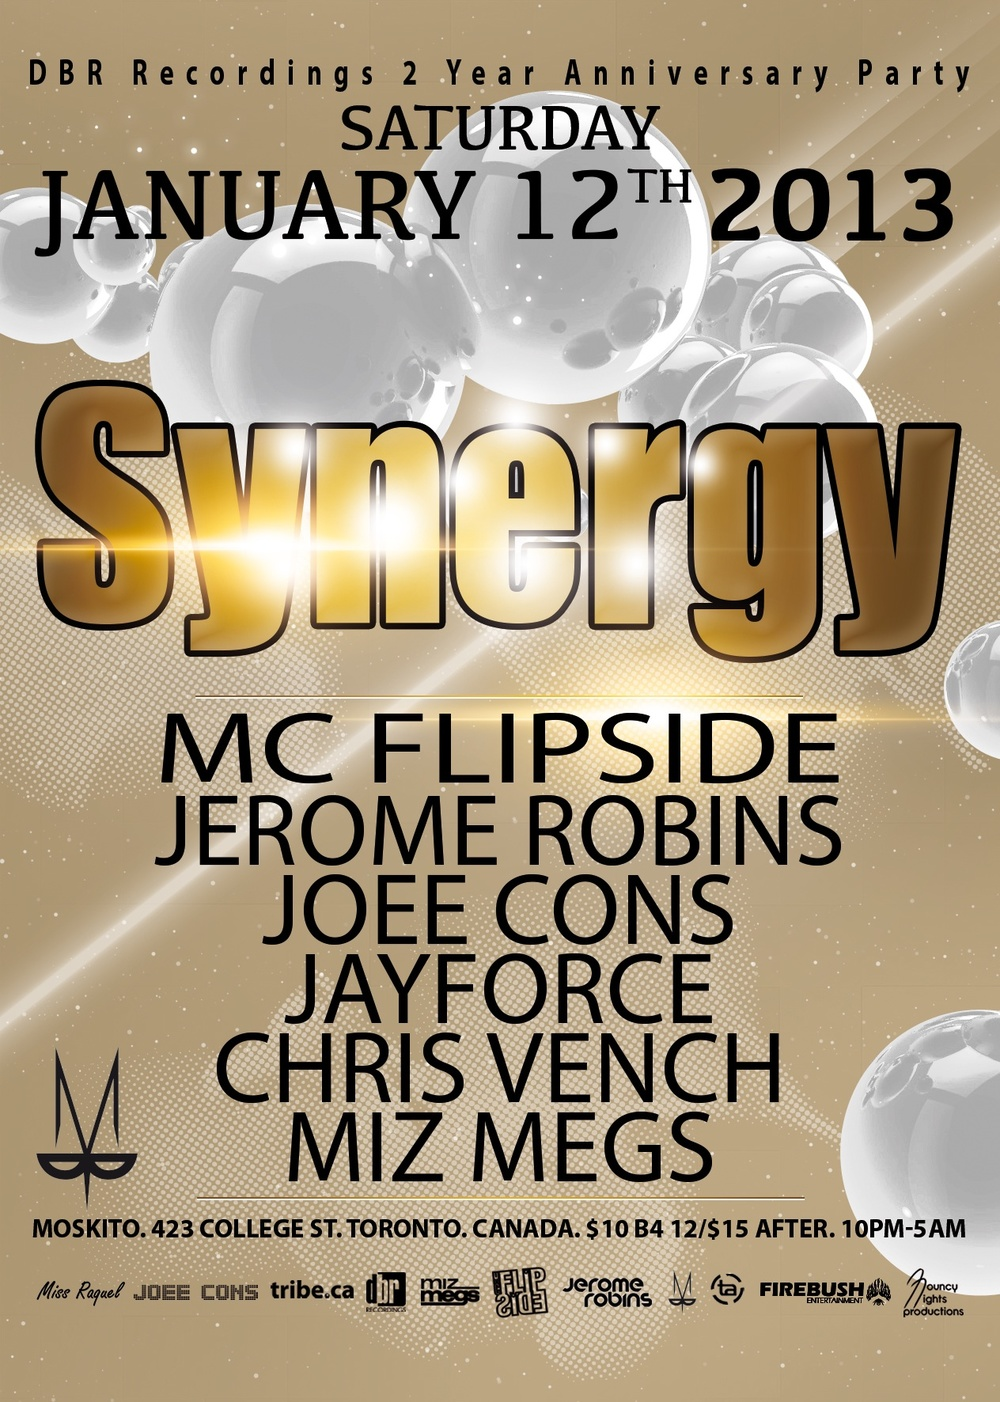 MC Flipside, Jerome Robins, Joee Cons, Jayforce, Chris Vench, Miz Megs Toronto Moskito